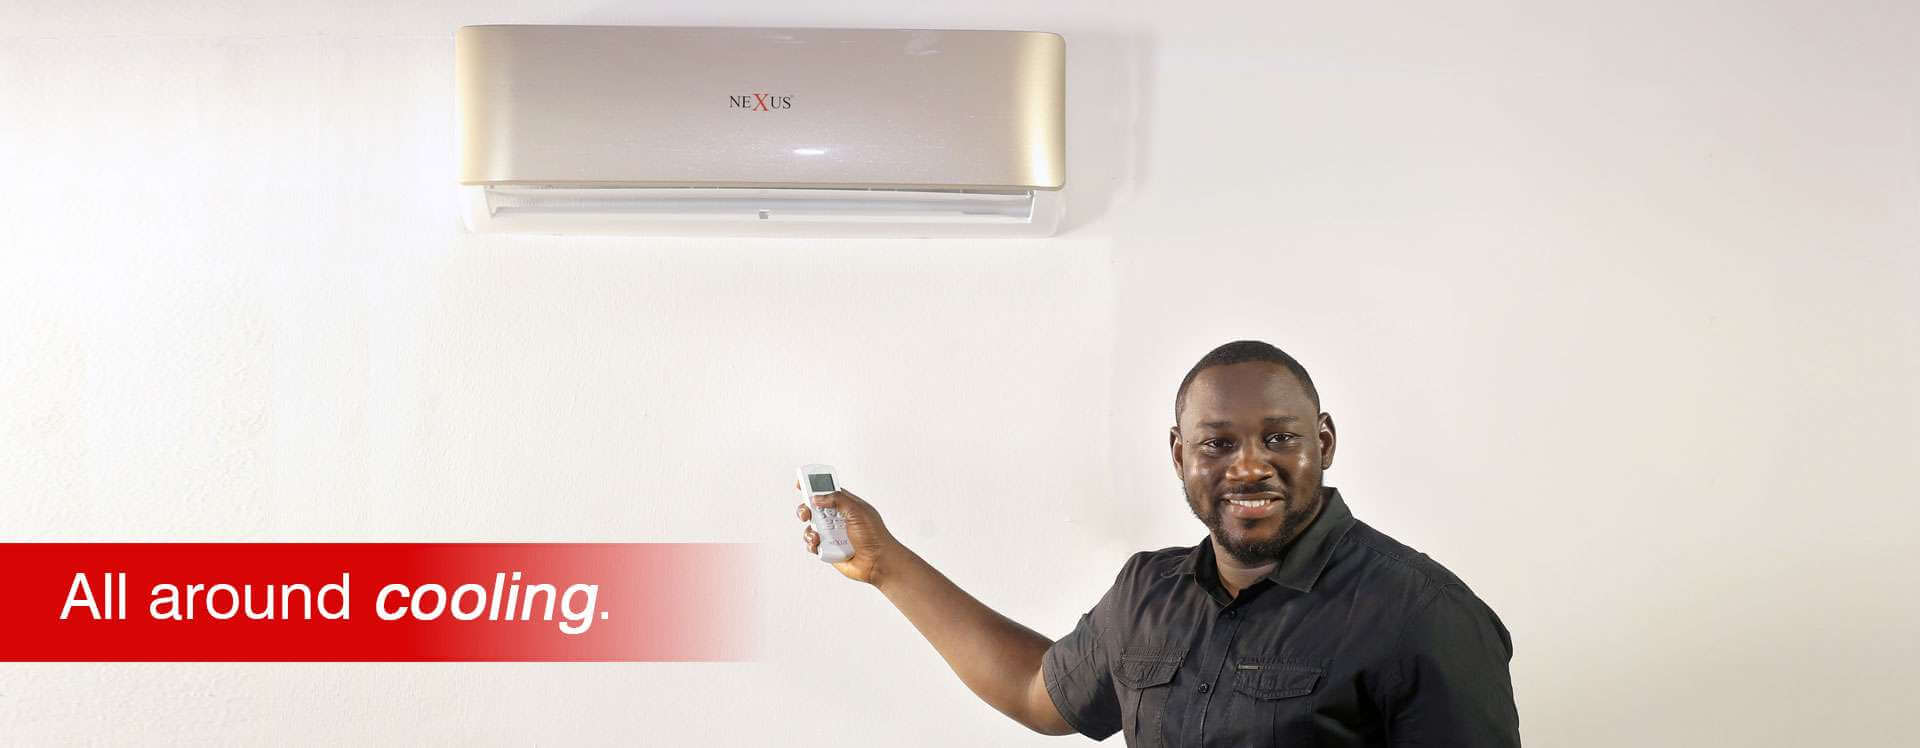 23-air-conditioners